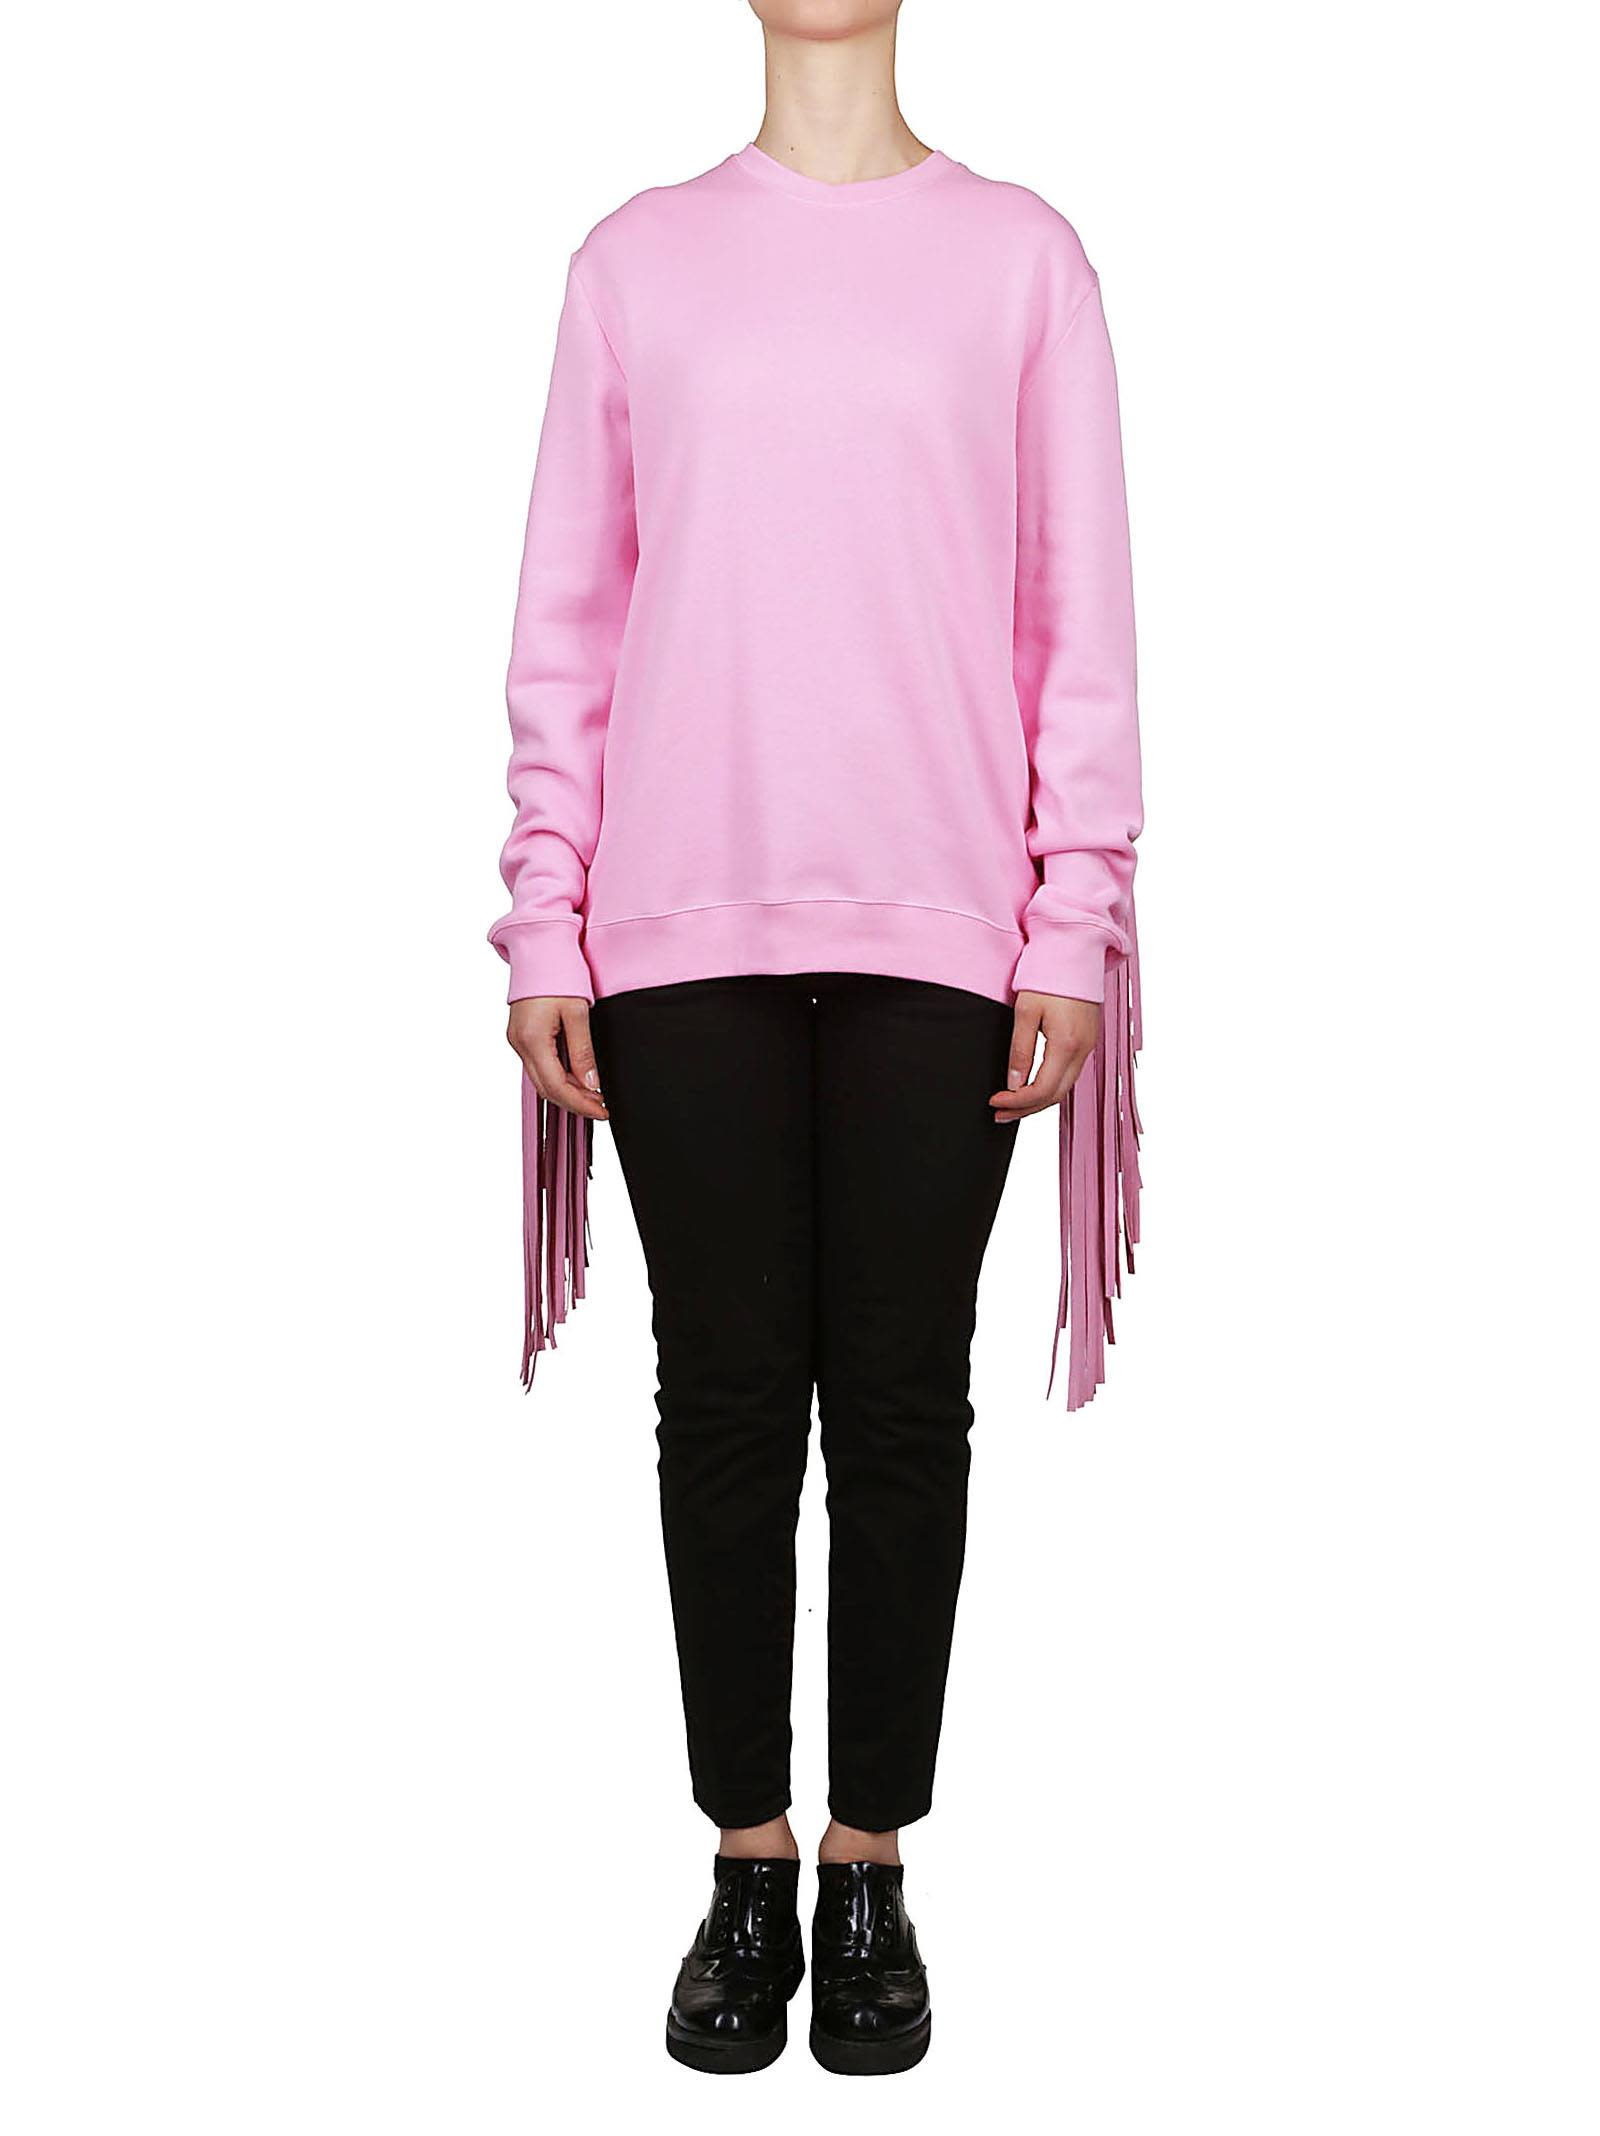 fringe detail sweatshirt - Pink & Purple Msgm Largest Supplier Sale Online Cheap Exclusive jE9os